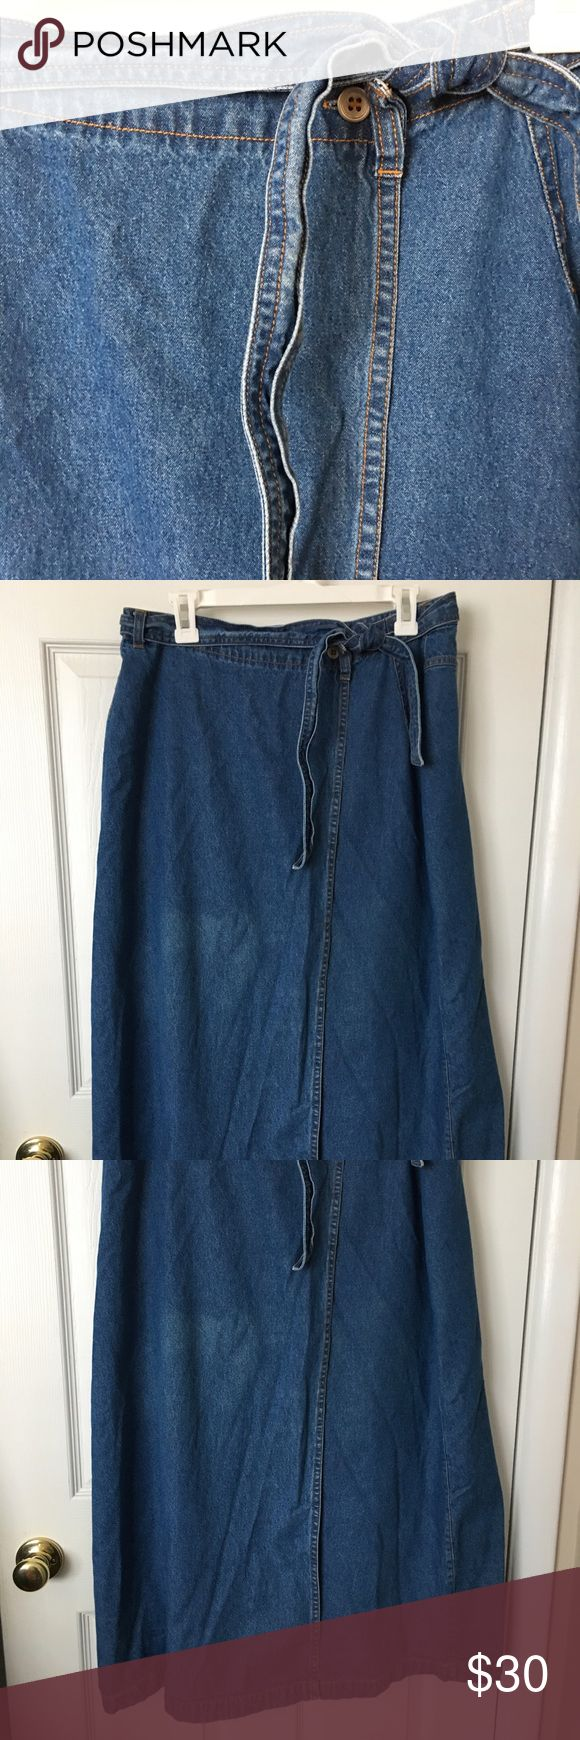 LAURA GAYLE Wrap Maxi Denim Skirt This is a cutie on excellent condition. Has two buttons on waist to wrap and a Denim belt for decor and fasten the waist. Back has Jeans shape. Straight line. Sz 16. Smoke and pet free. #maxiskirt #maxidenimskirt #denimskirt #lauragayle #bohostyle Laura Gayle Skirts Maxi